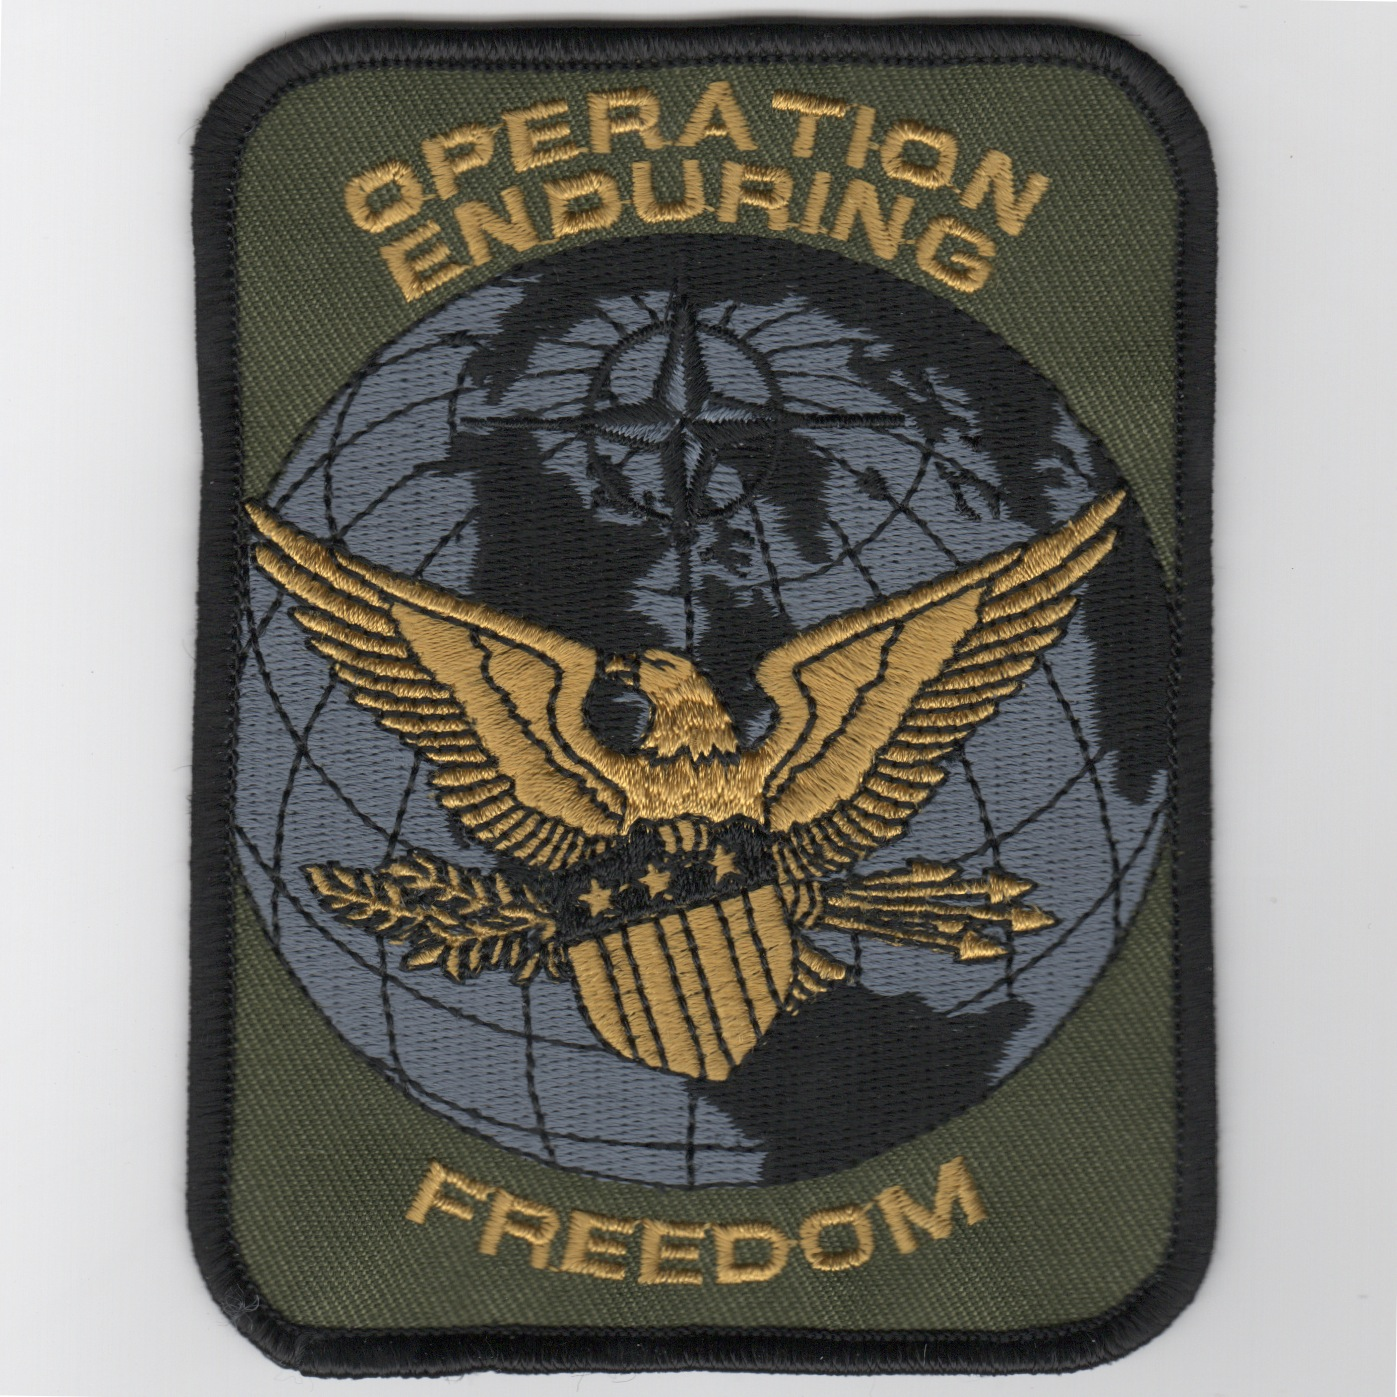 Operation ENDURING FREEDOM (Rect/Subd)